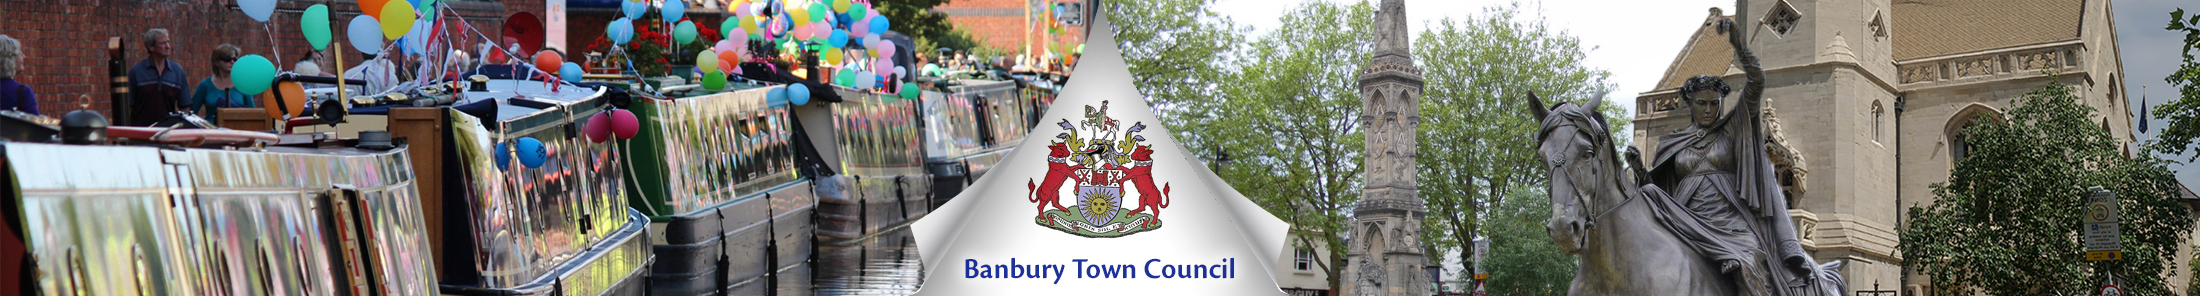 Header Image for Banbury Town Council